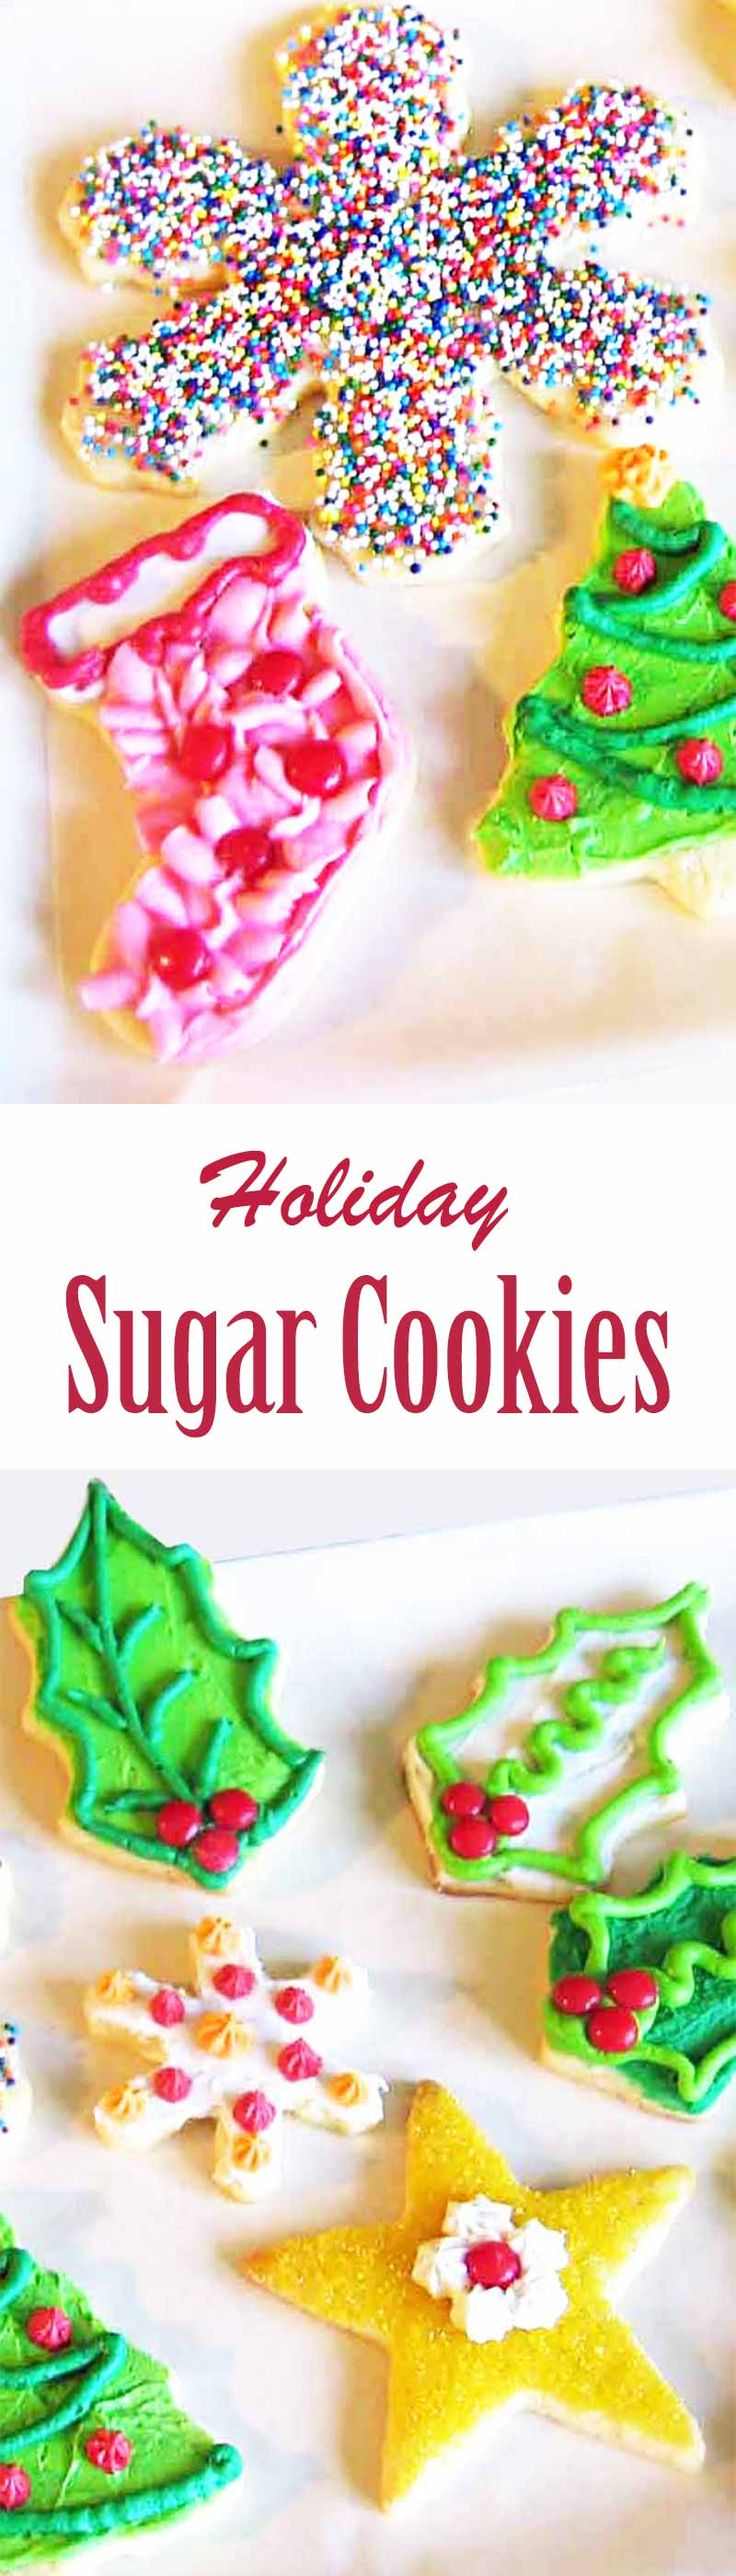 Tried-and-true, fabulous sugar cookie recipe! Old fashioned, easy to make buttery cookies, perfect to decorate for the holidays! #ChristmasCookies #Cookies #SugarCookies